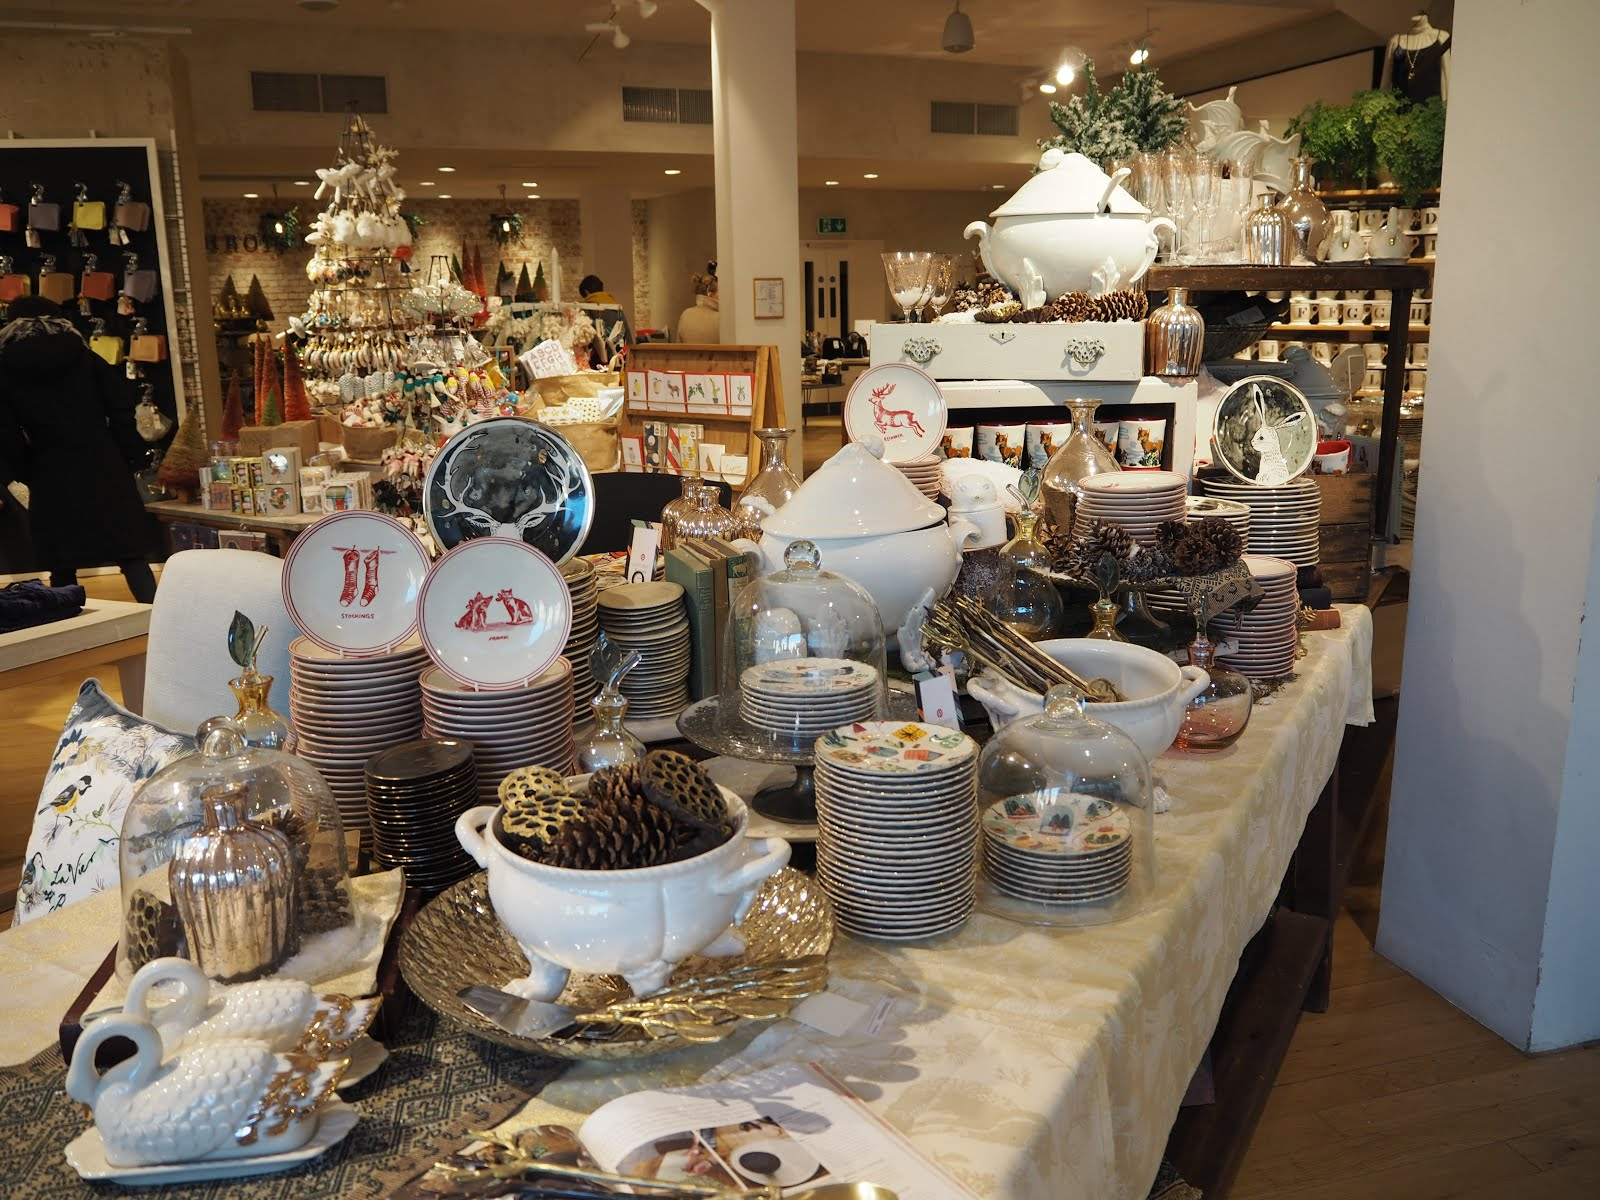 This Christmas display is from Bath Anthropologie in the UK.